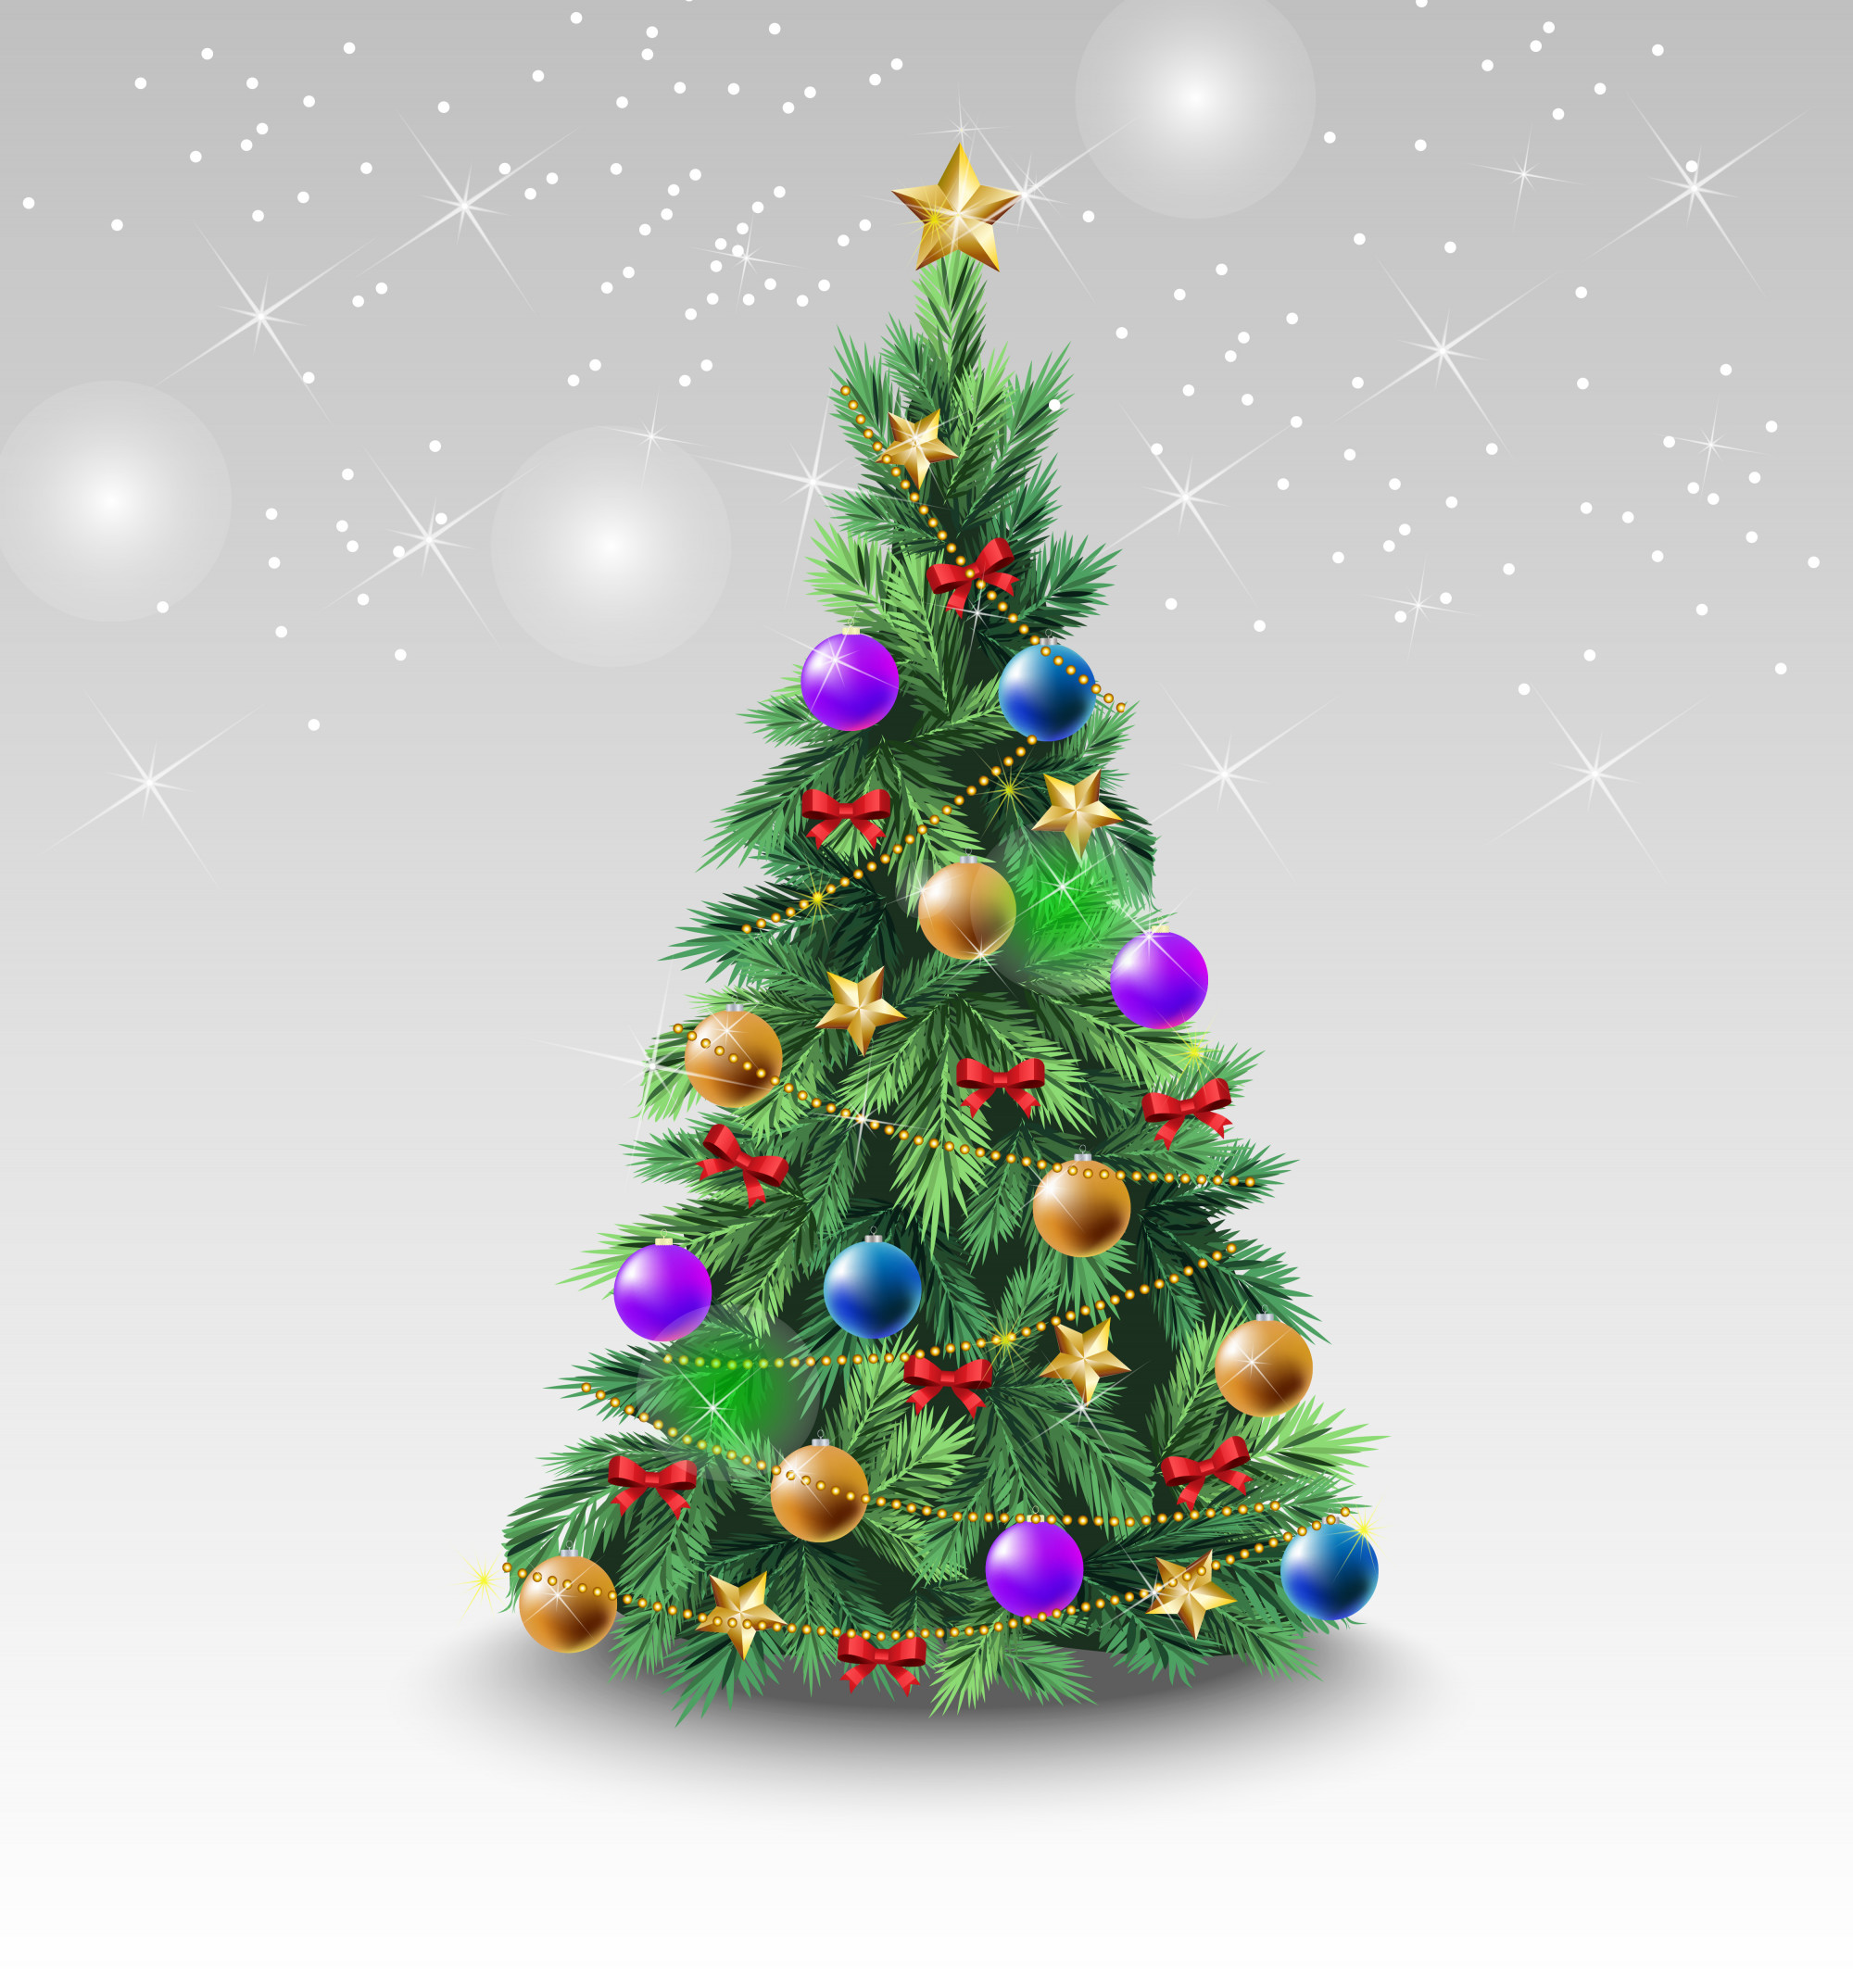 Beautiful Christmas tree with colorful balls